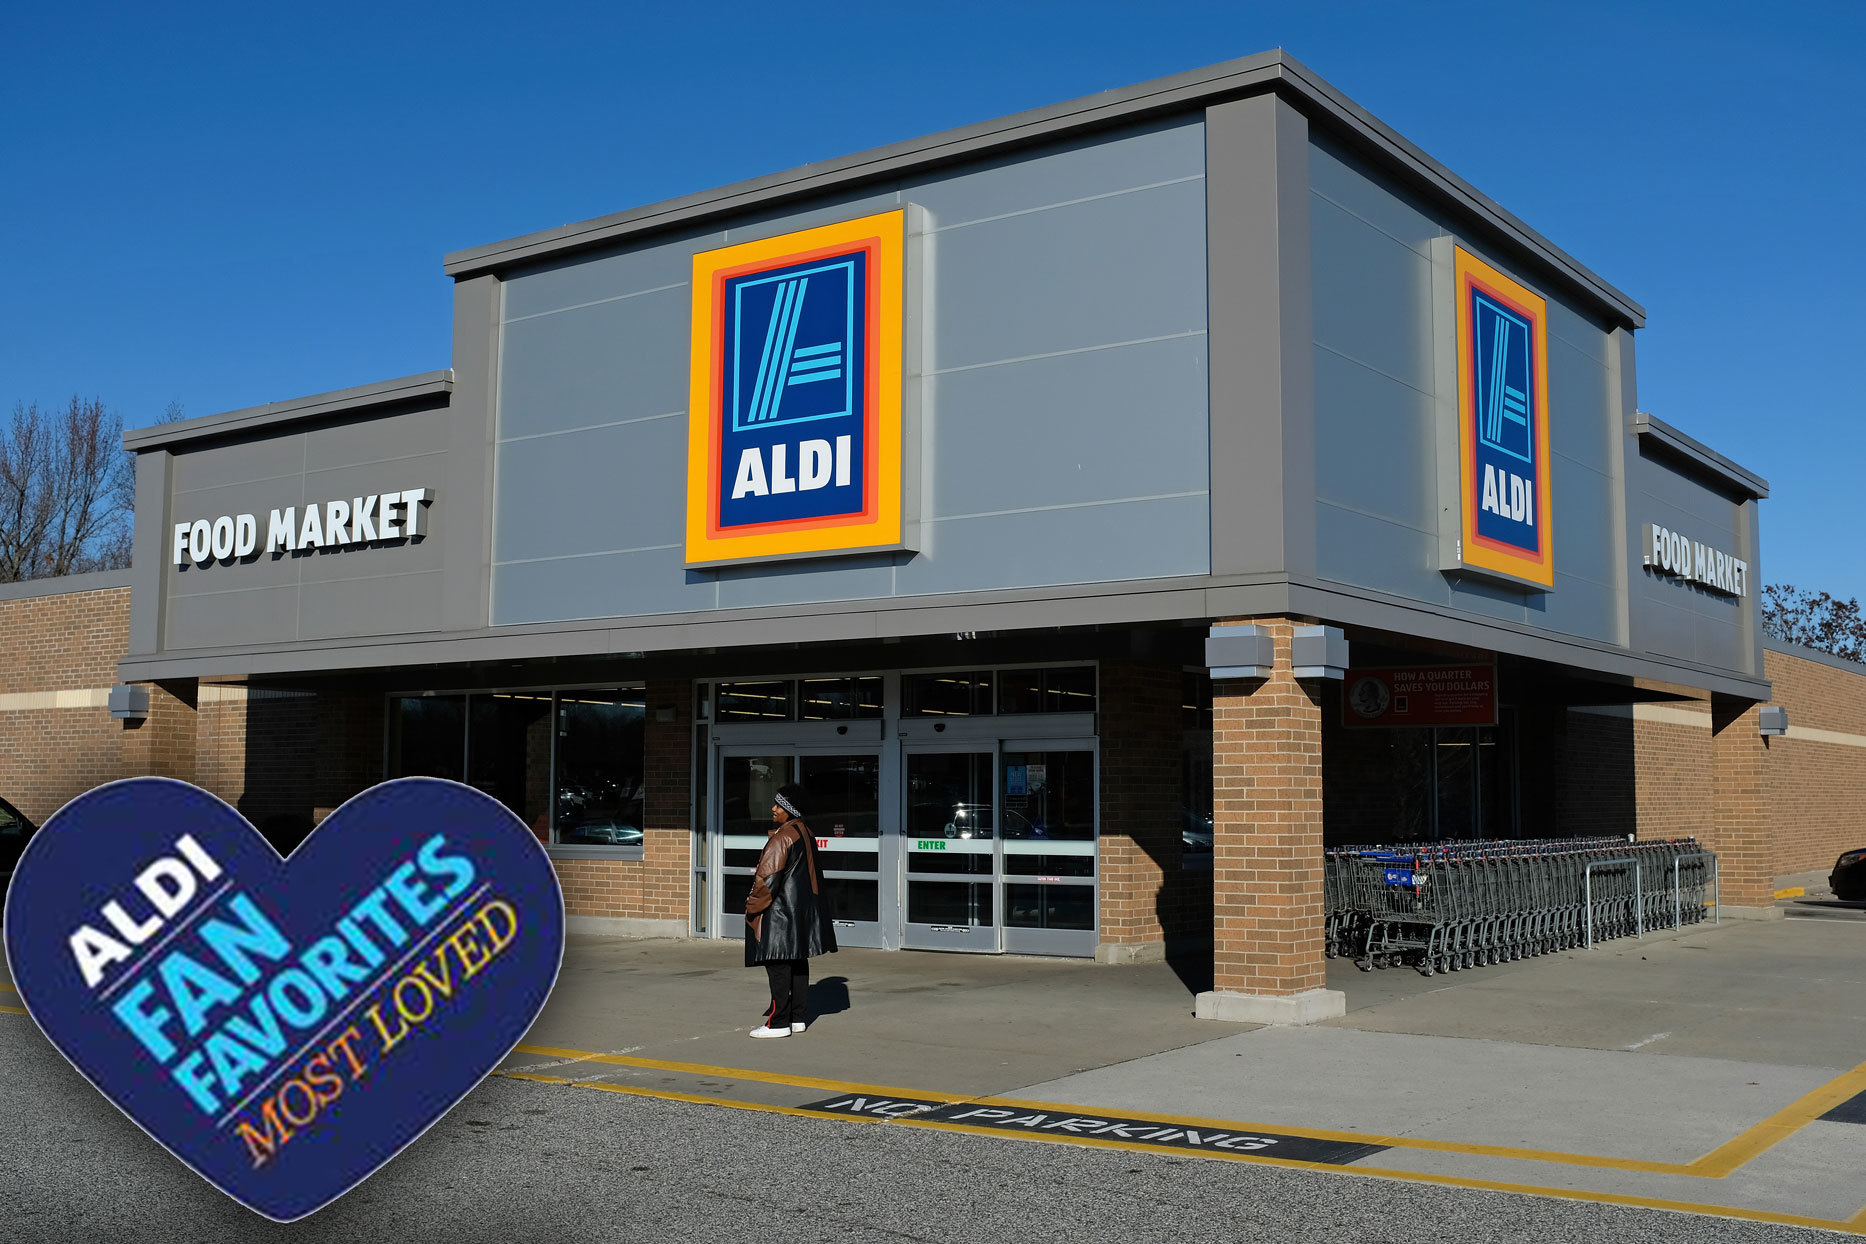 Aldi storefront with Aldi Fan Favorites